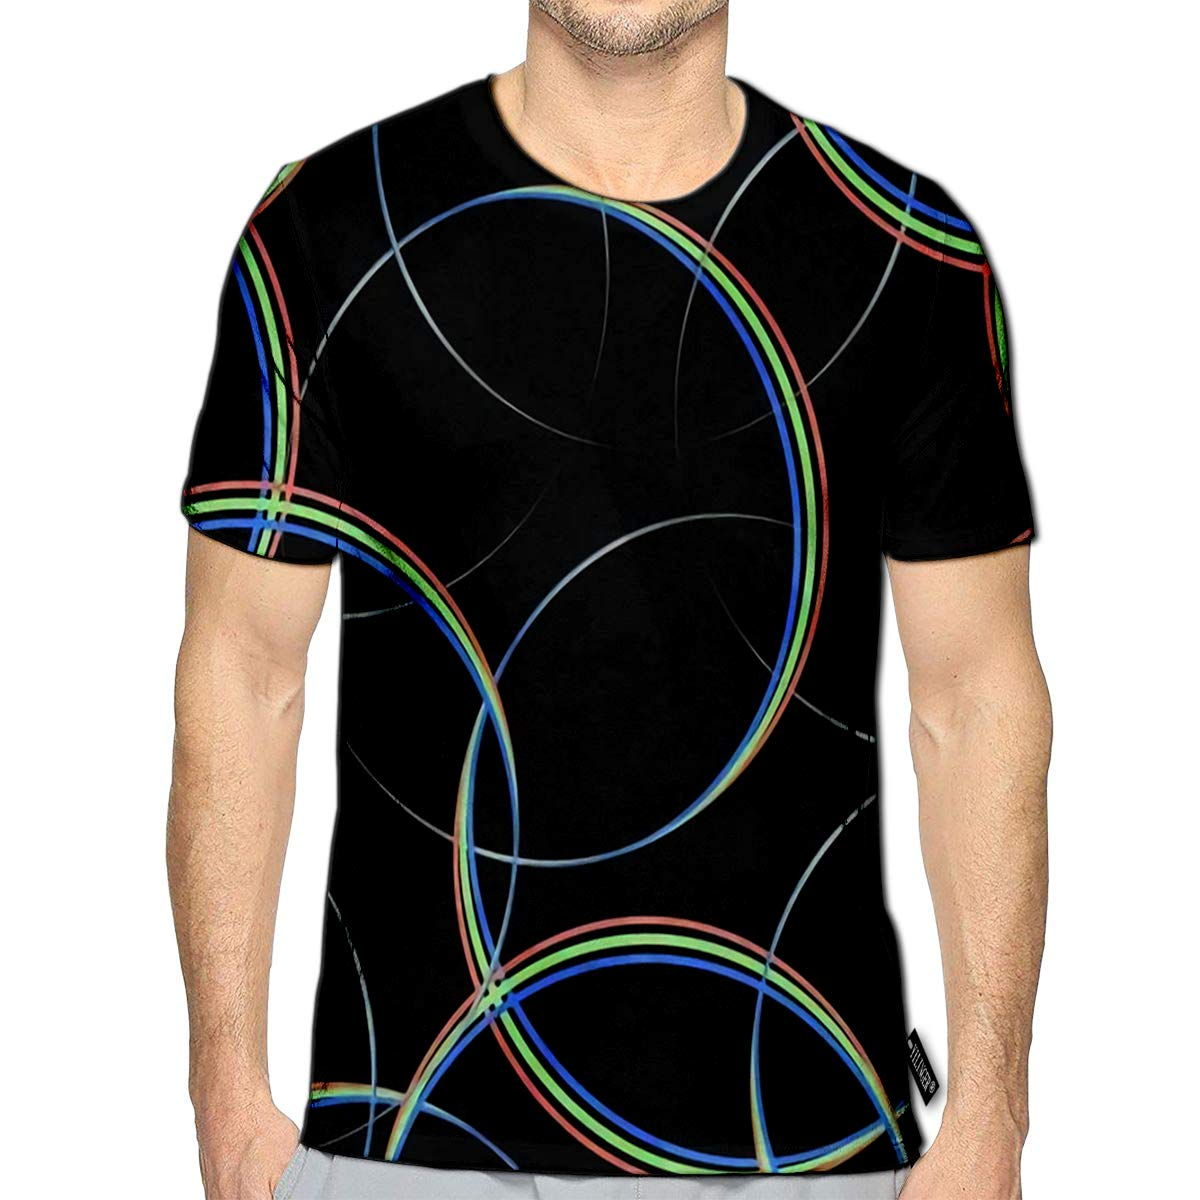 3D Printed T-Shirts Spectrum Circles Short Sleeve Tops Tees